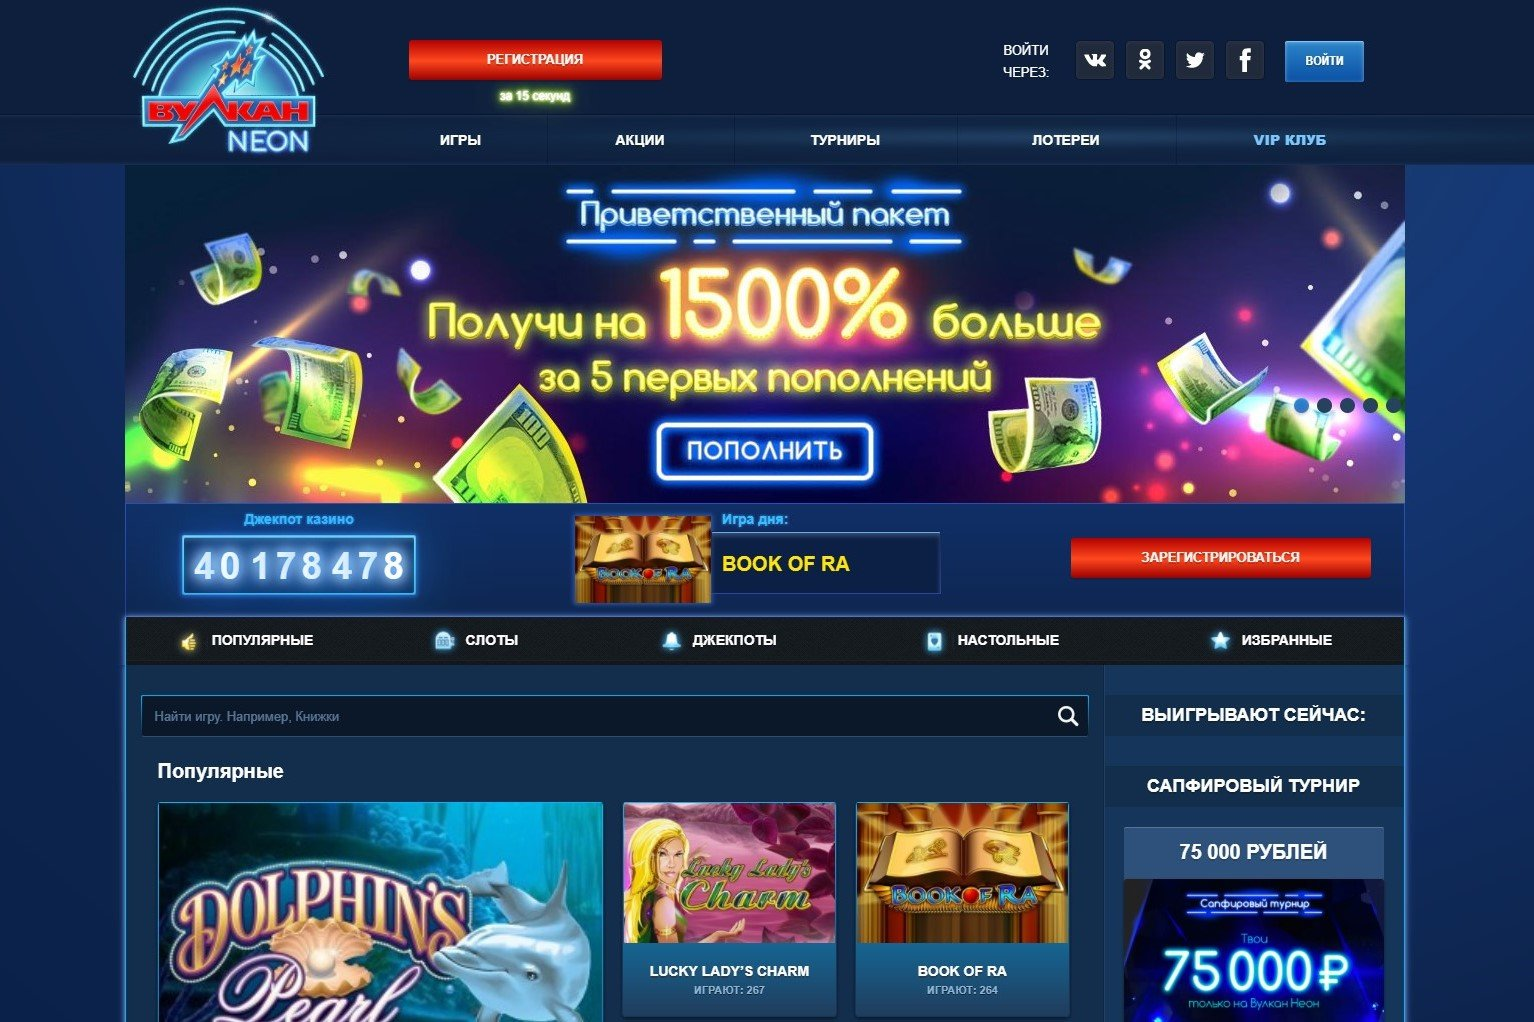 Бездепозитный space casino ego